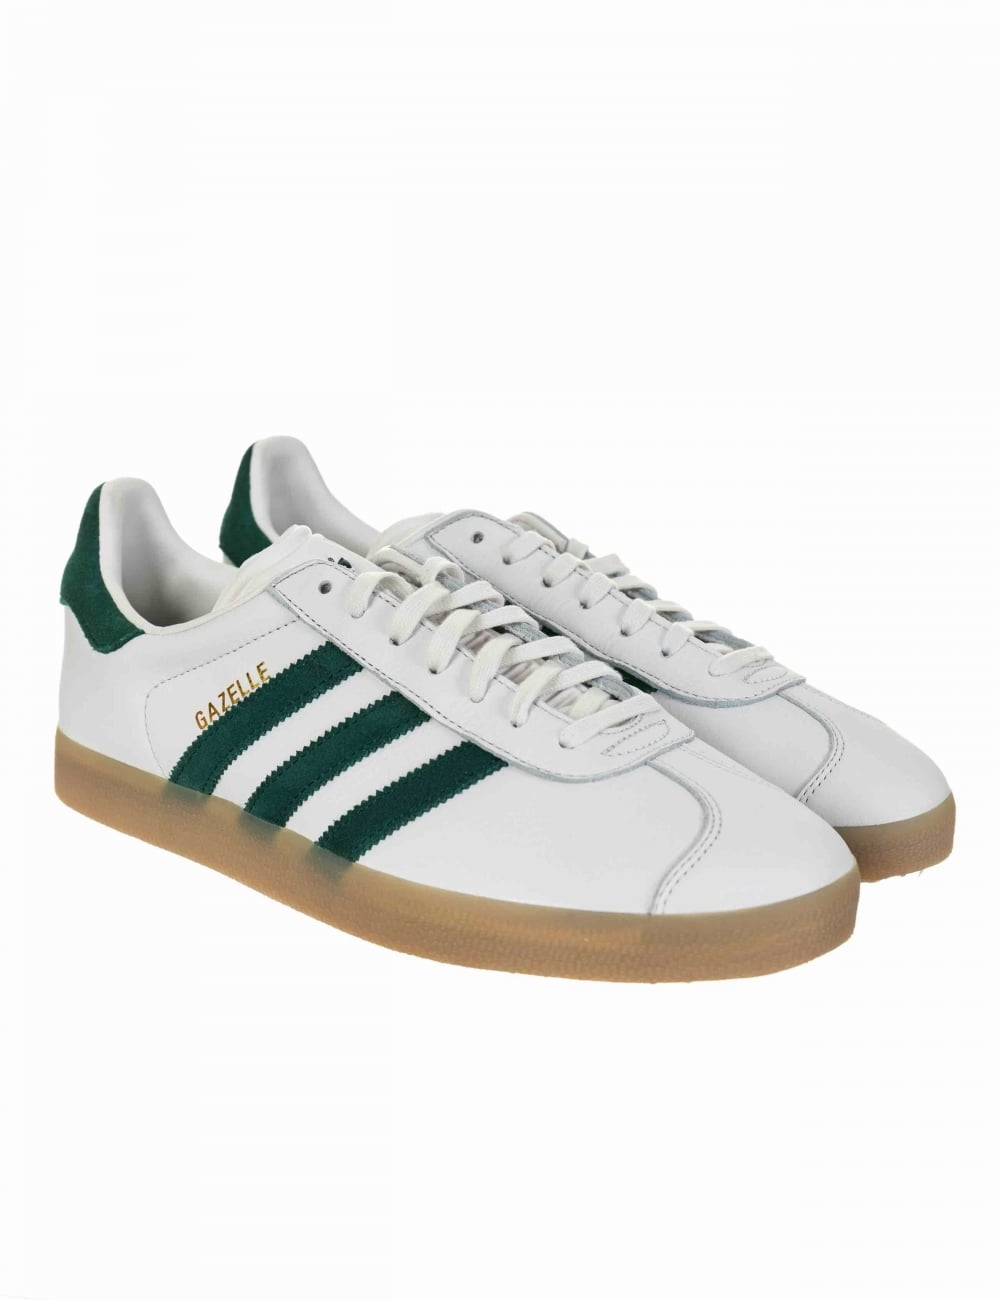 Gazelle OG Shoes Vintage WhiteCollegiate Green